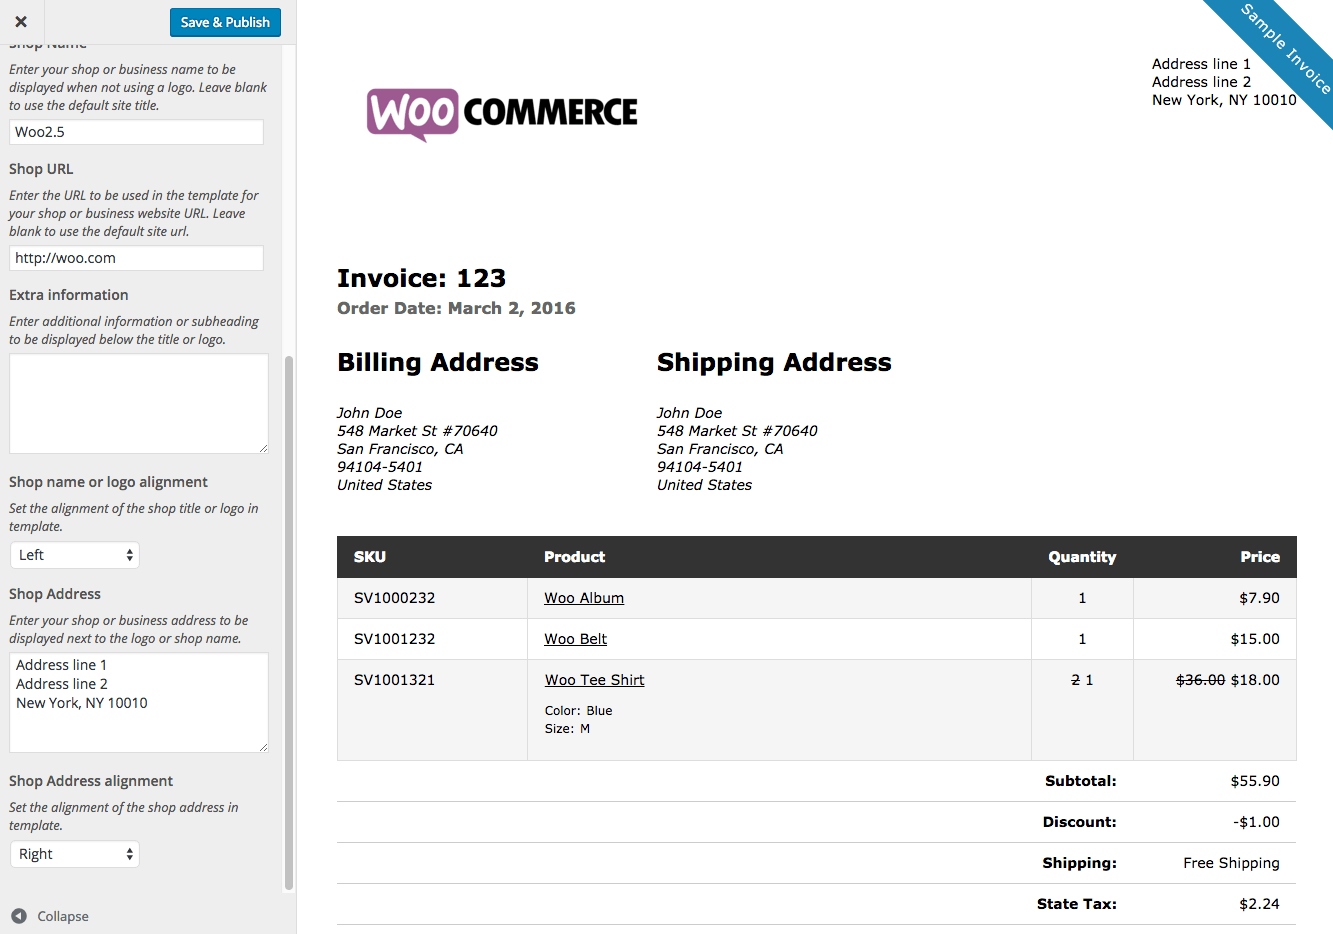 Adoringacklesus  Gorgeous Print Invoices Amp Packing Lists  Woocommerce With Engaging Woocommerce Print Invoices  Packing Lists Customizer With Charming Mechanic Receipt Also Organizing Receipts In Addition Receipt Reader And Printable Cash Receipt As Well As Dollar Rental Car Receipt Additionally Dts Lost Receipt Form From Woocommercecom With Adoringacklesus  Engaging Print Invoices Amp Packing Lists  Woocommerce With Charming Woocommerce Print Invoices  Packing Lists Customizer And Gorgeous Mechanic Receipt Also Organizing Receipts In Addition Receipt Reader From Woocommercecom